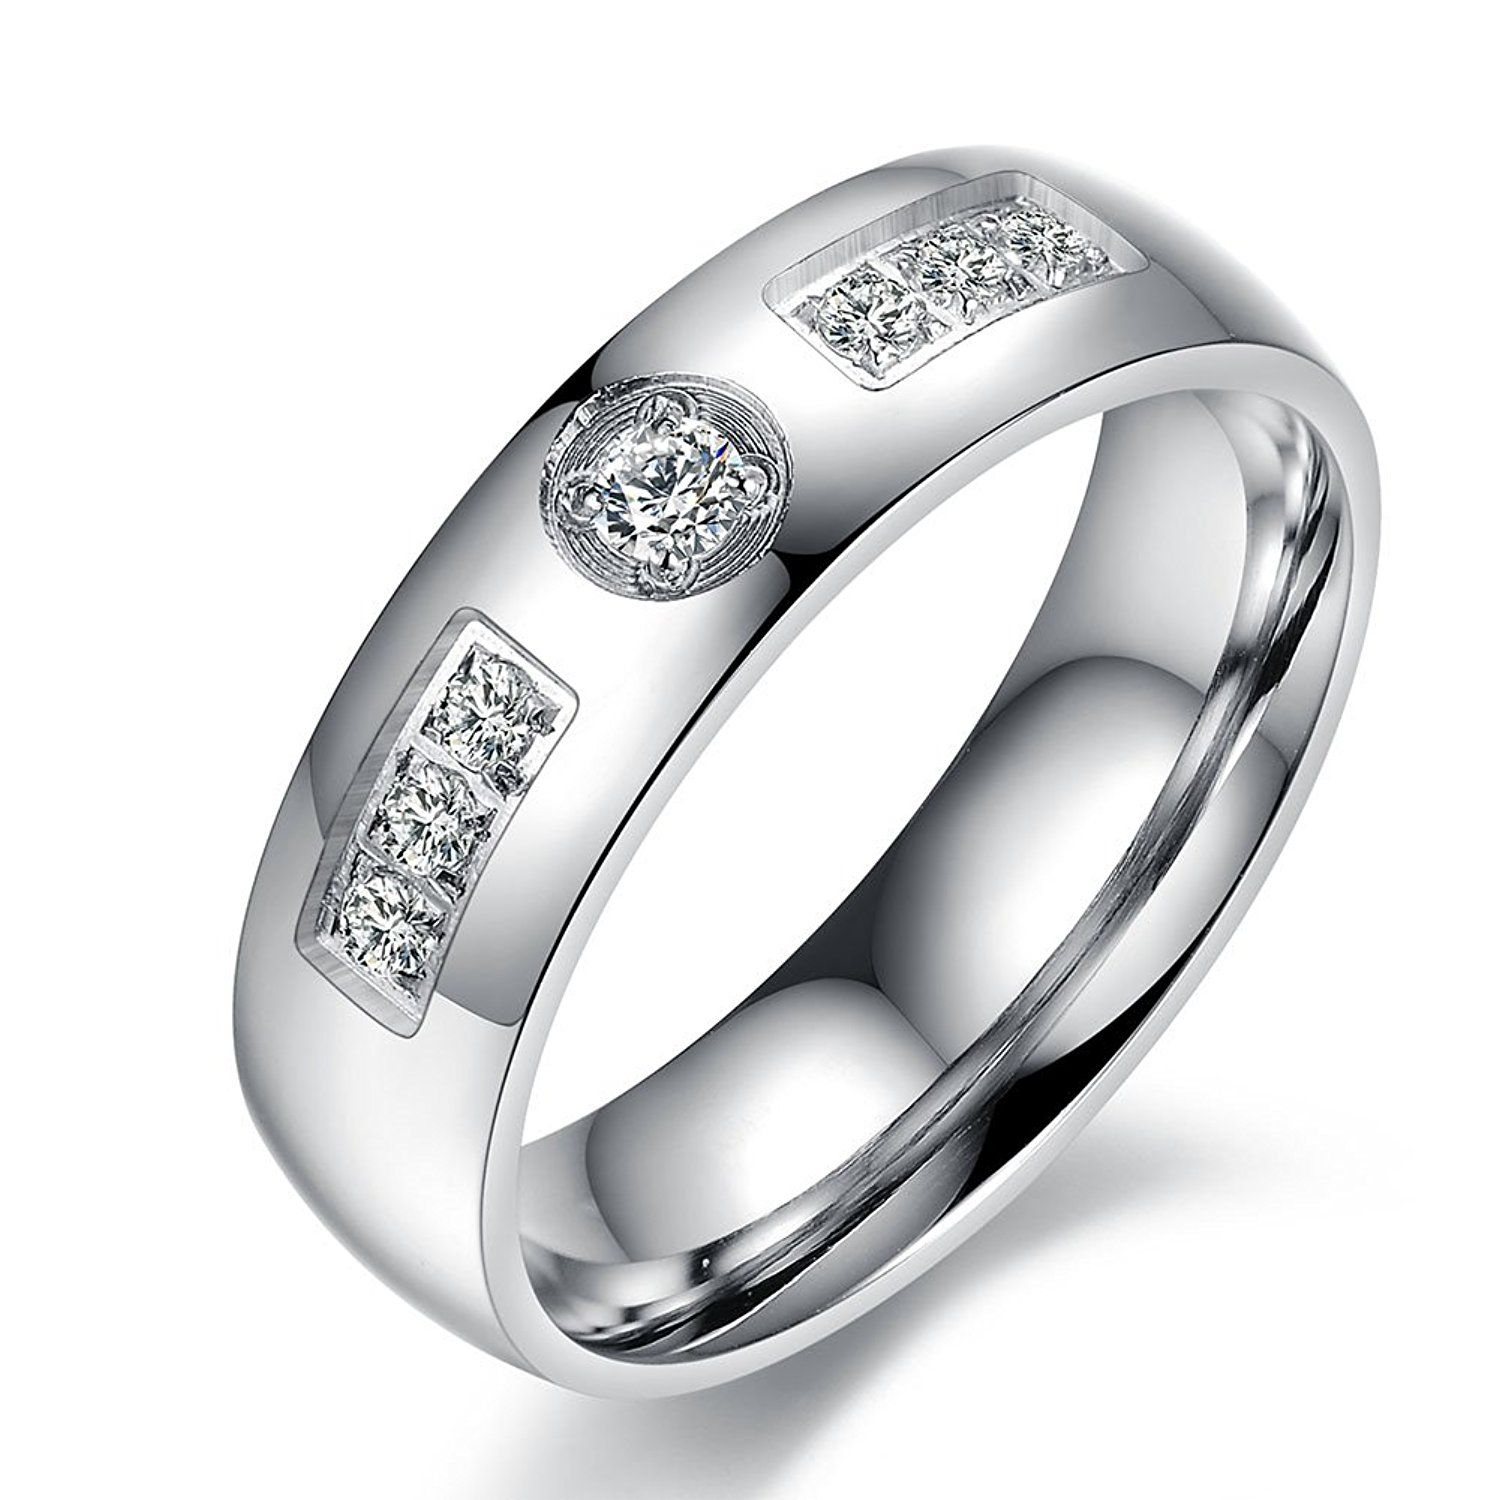 Stainless Steel Engagement Wedding Cz Wedding Ring Bands